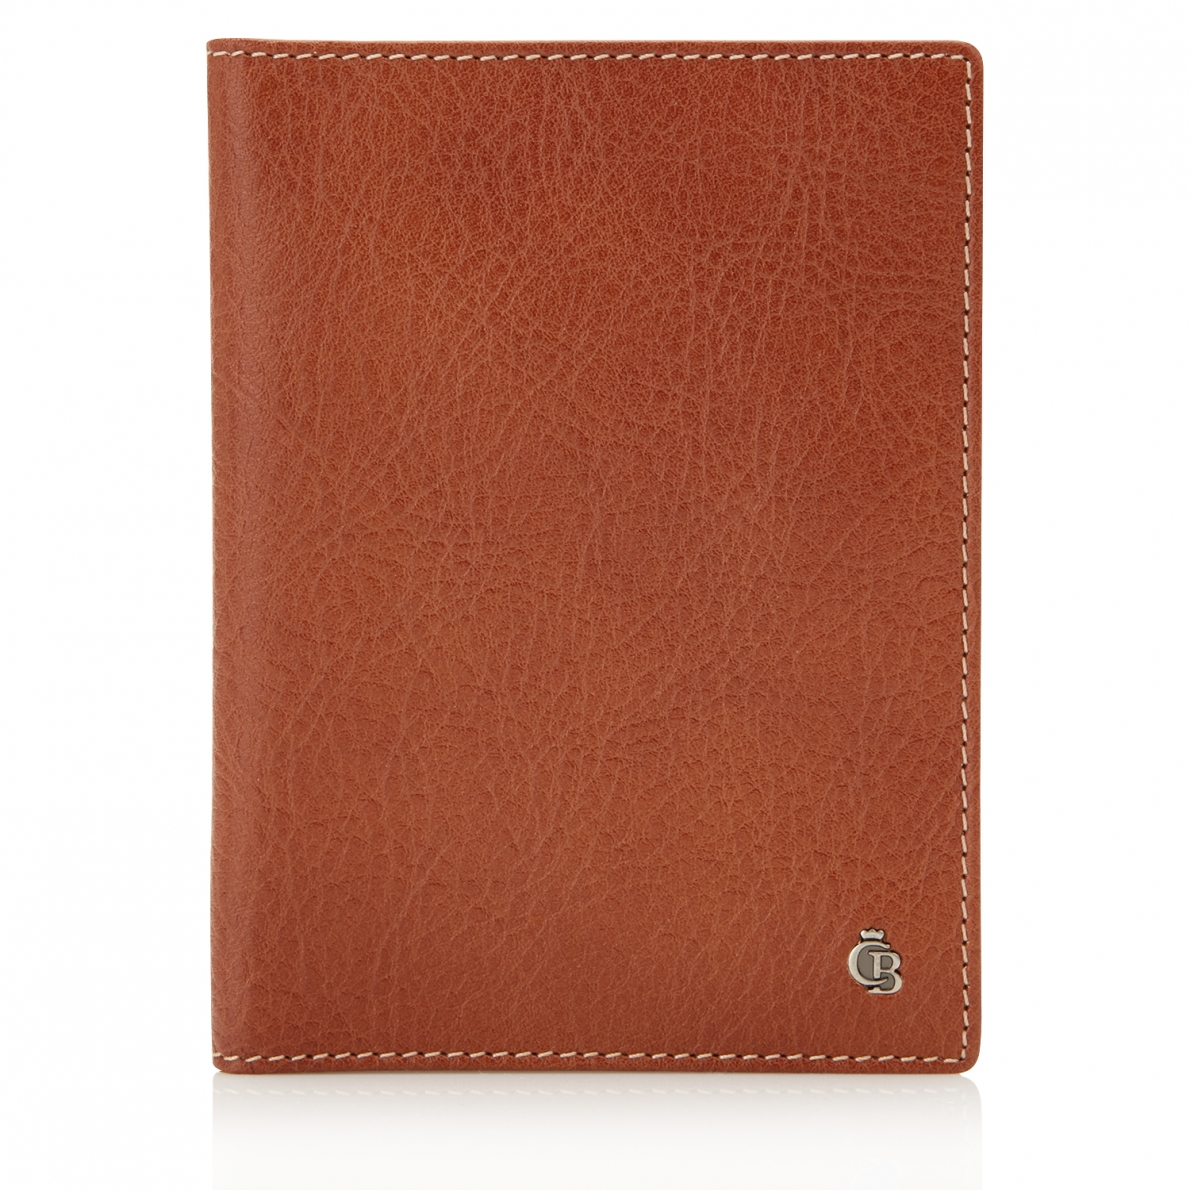 Castelijn & Beerens Nova Passport Holder Tan